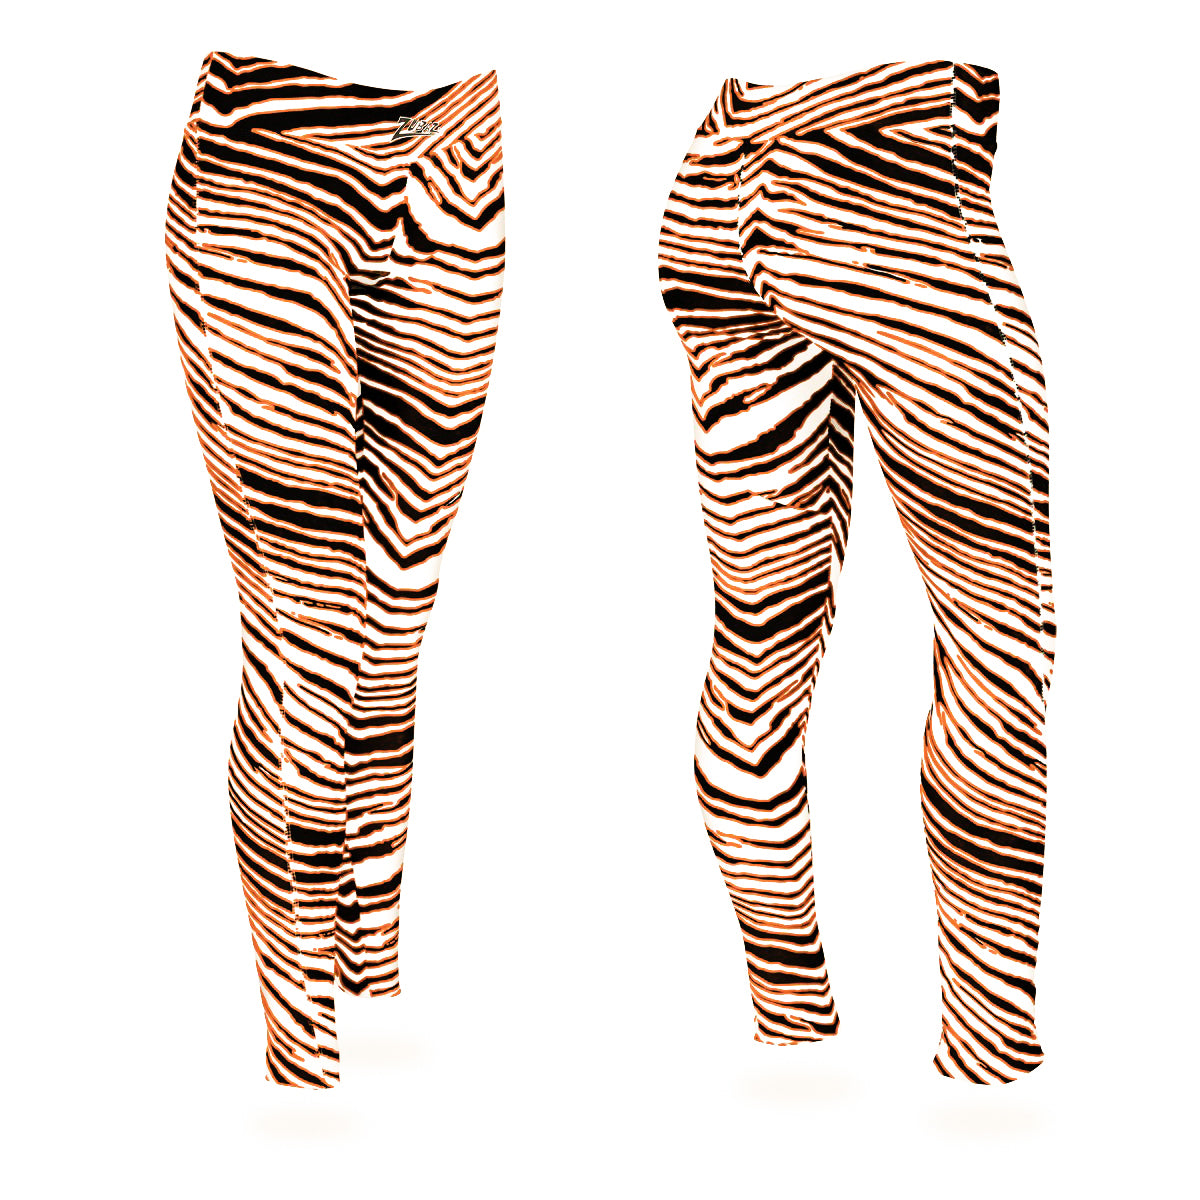 brandsego - Zubaz Zebra Print Slim Fit Trousers For Ladies-NA9250